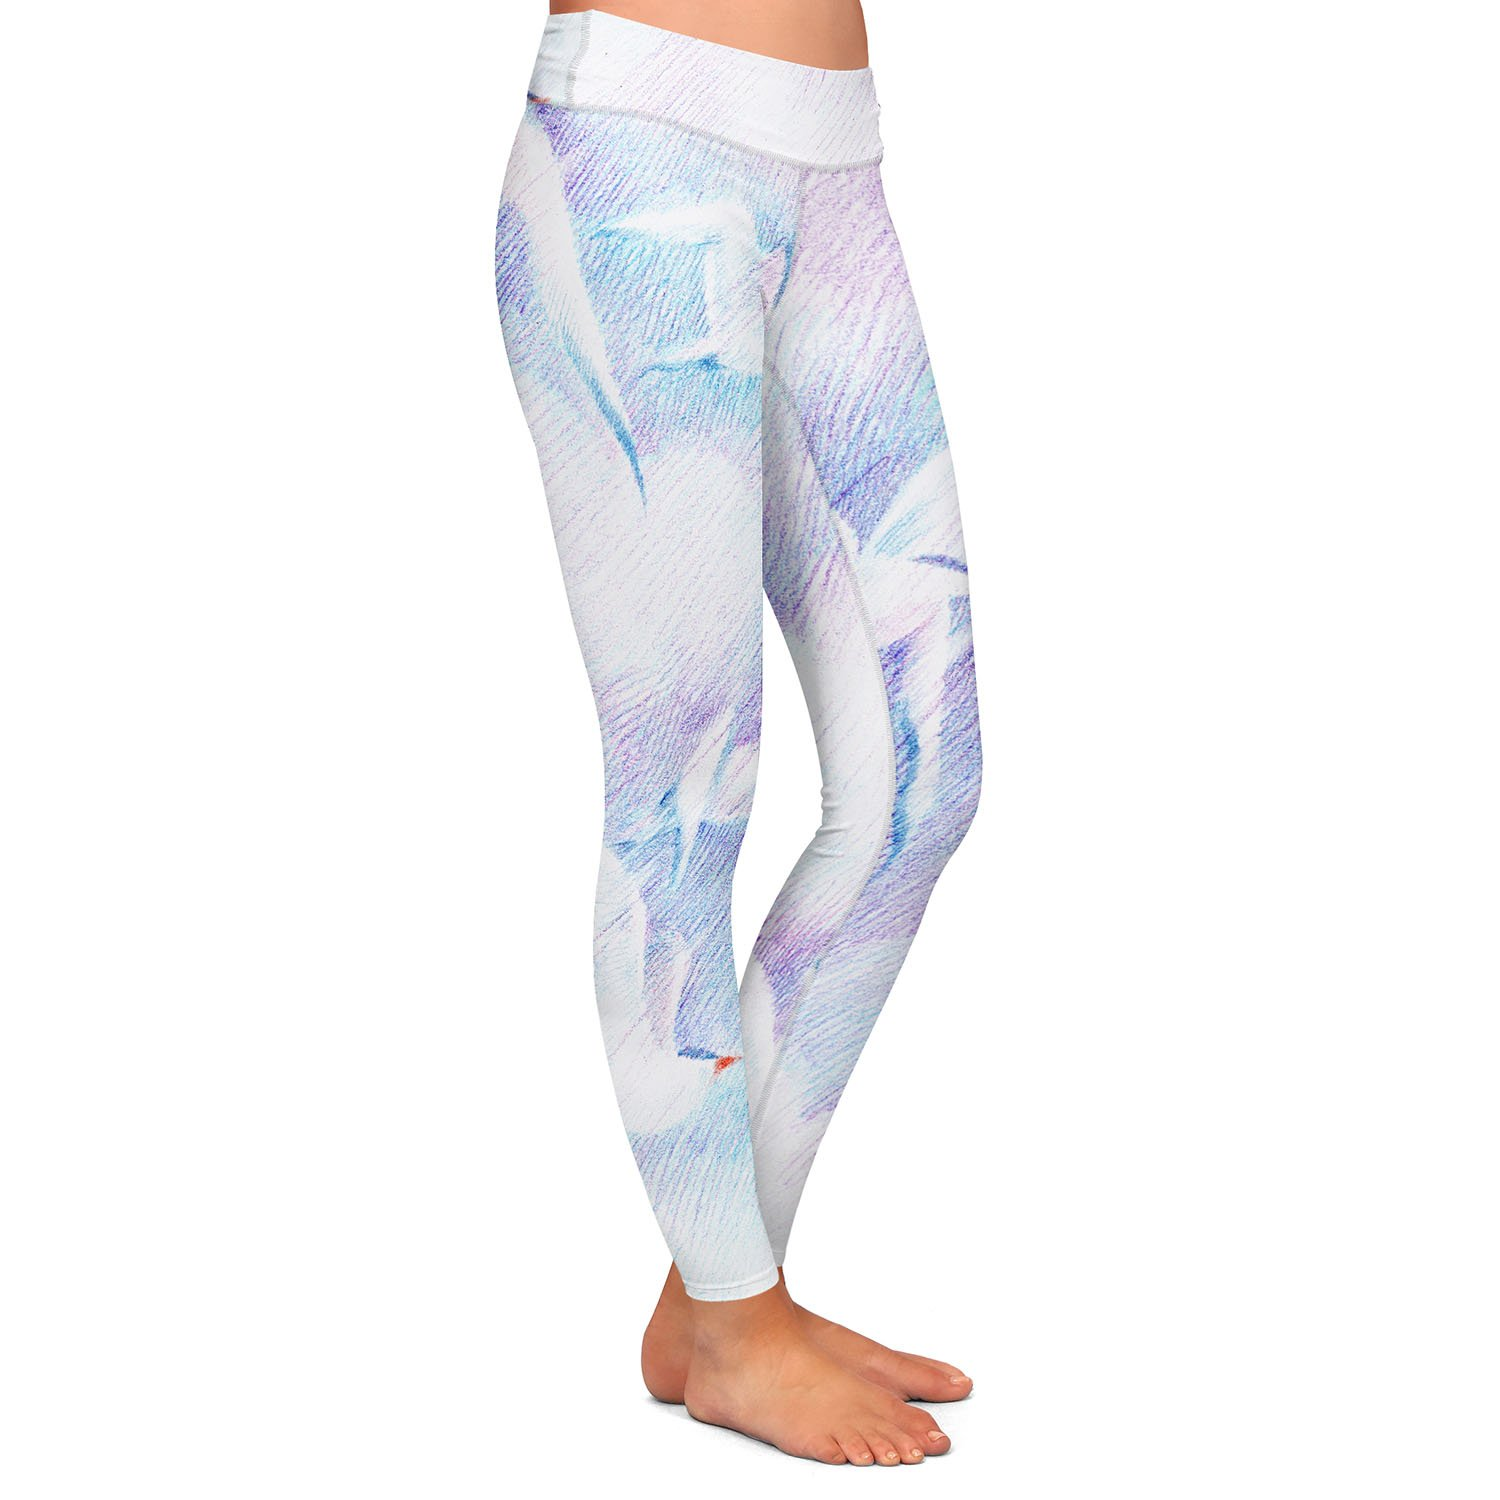 Athletic Yoga Leggings from DiaNoche Designs by Gerry Segismundo Swift